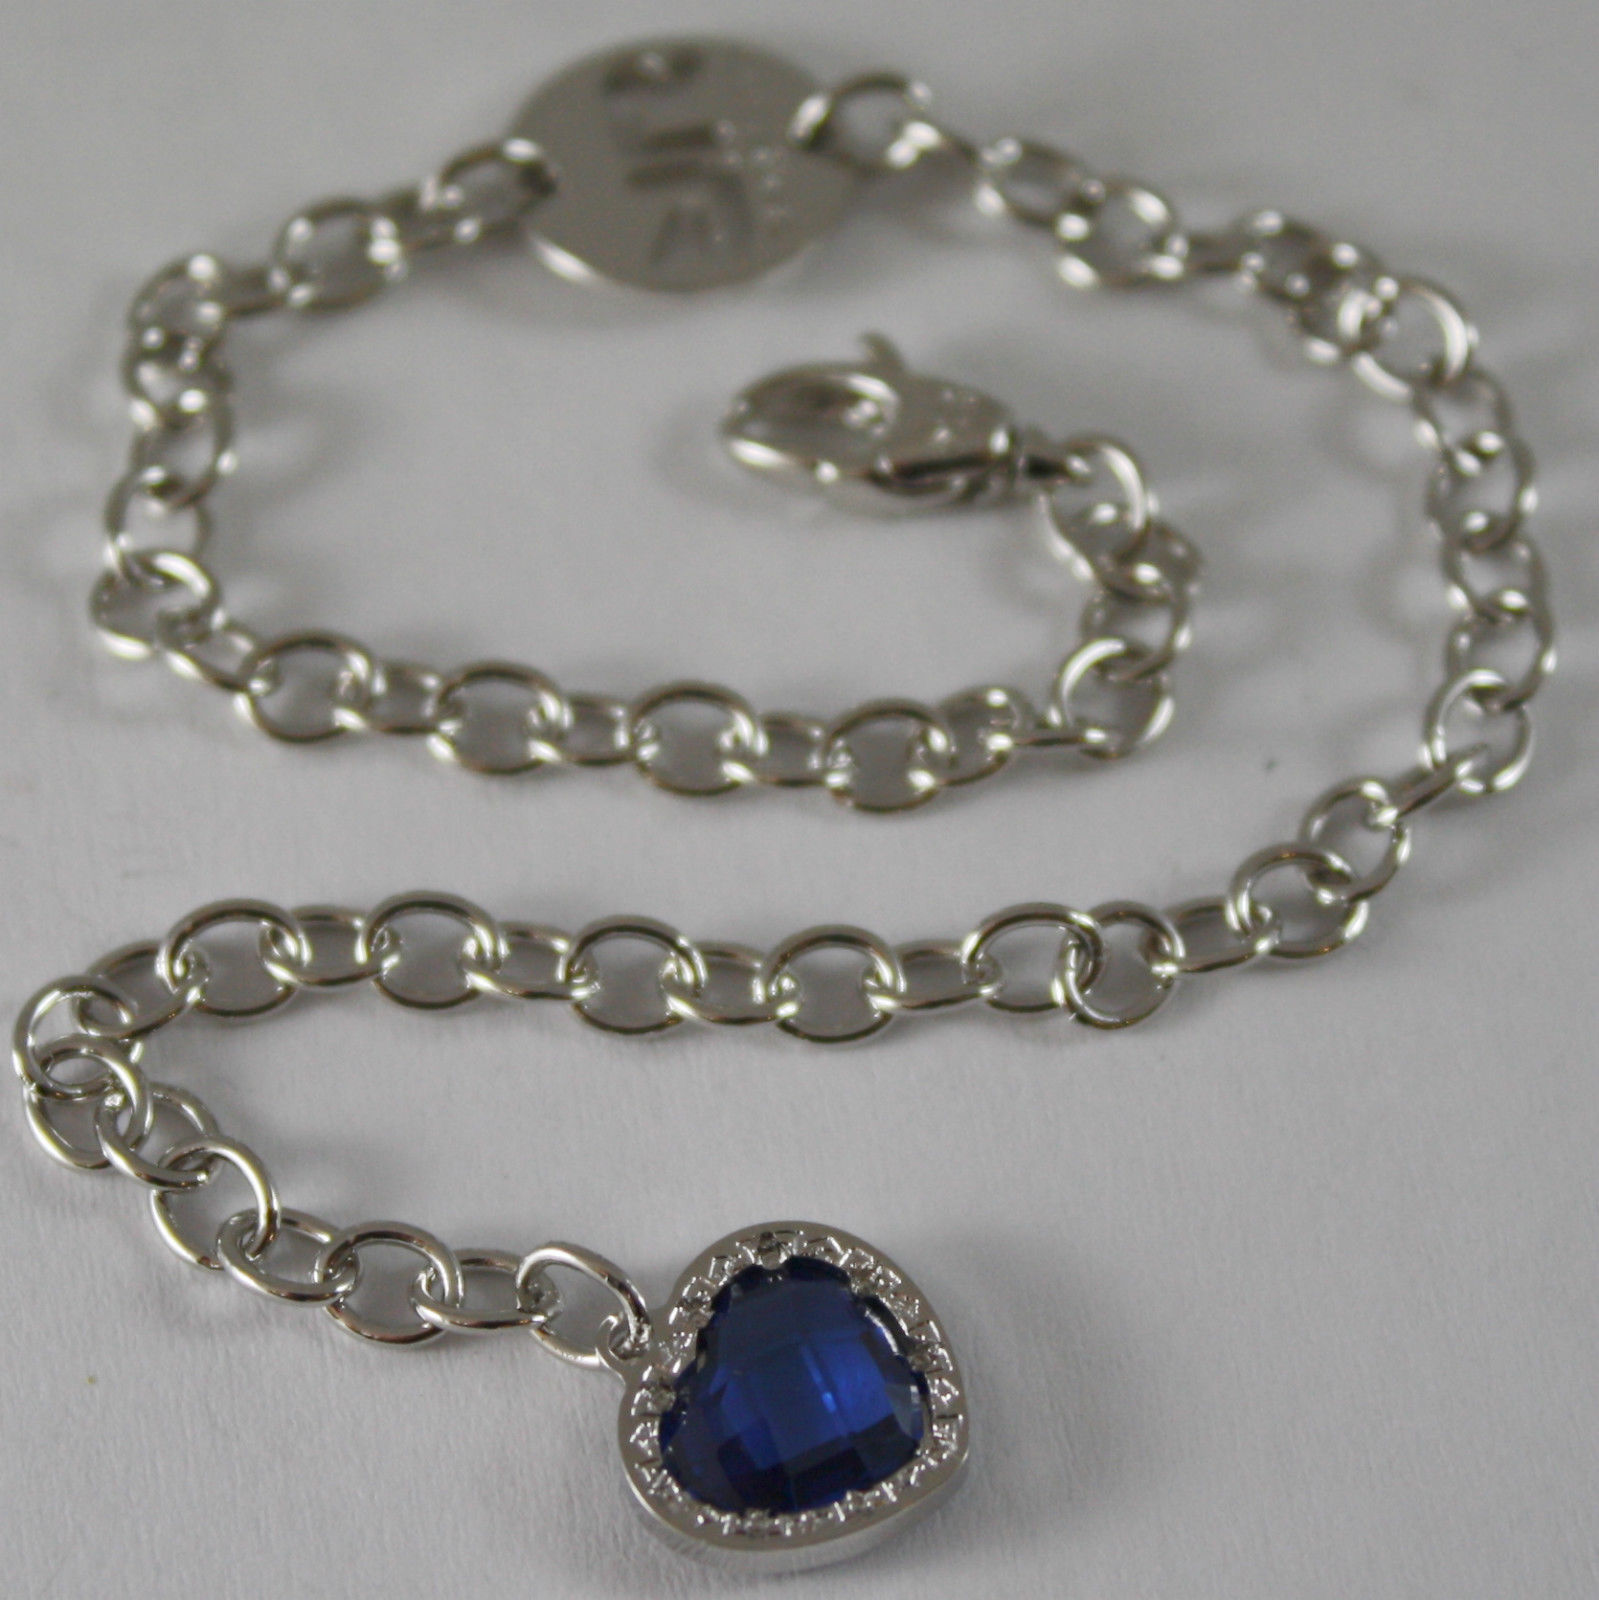 RHODIUM BRONZE BRACELET BLUE QUARTZ HEART,  B14BBT25, BY REBECCA MADE IN ITALY